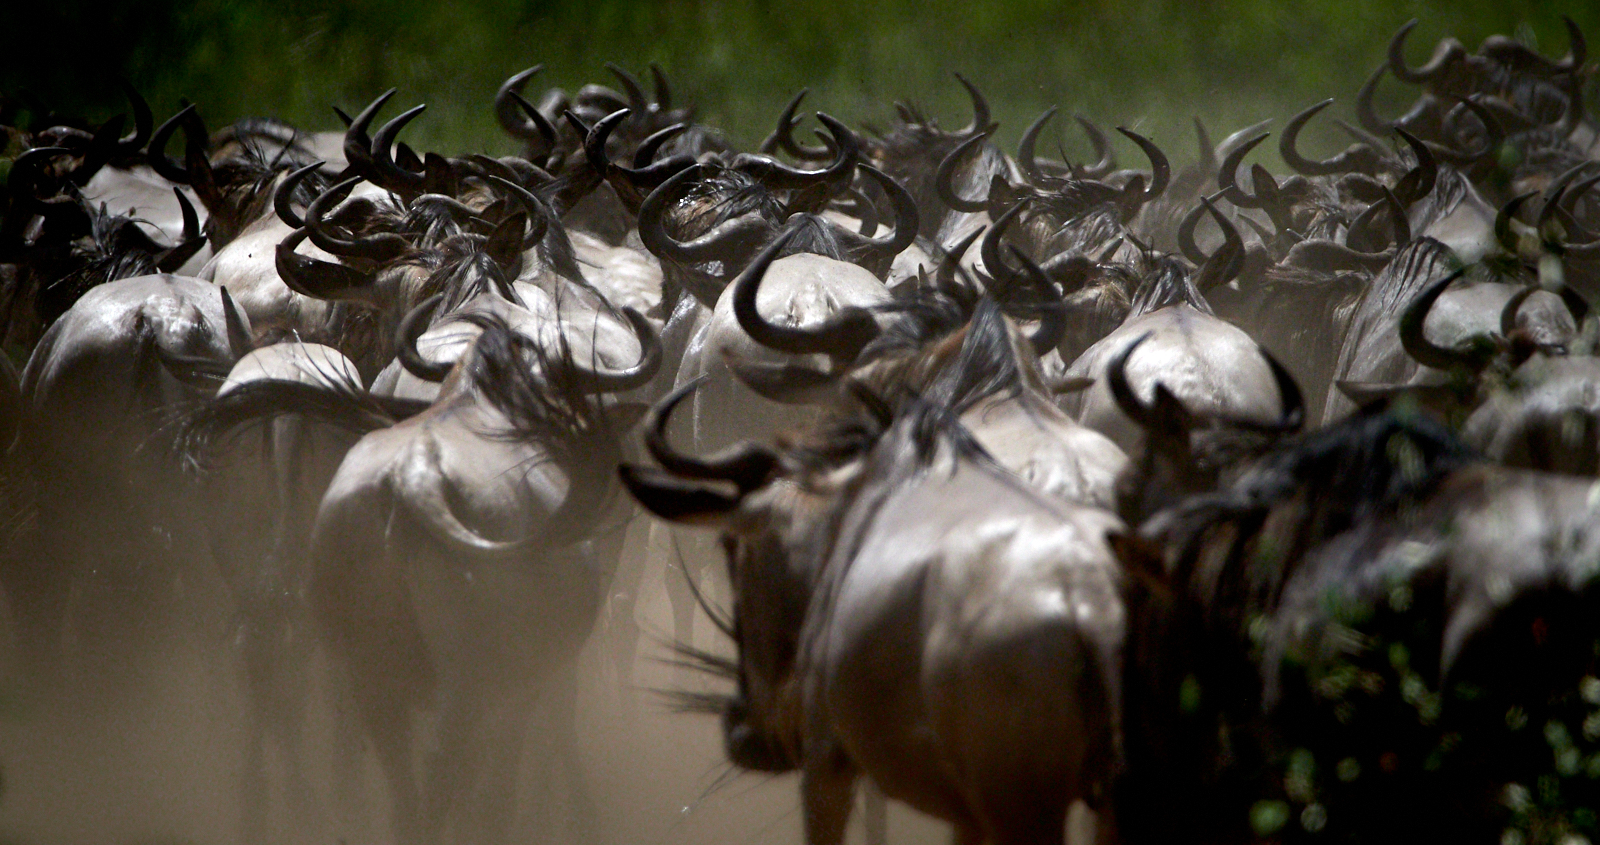 Wildebeest after the crossing 1600x1200 sRGB.jpg